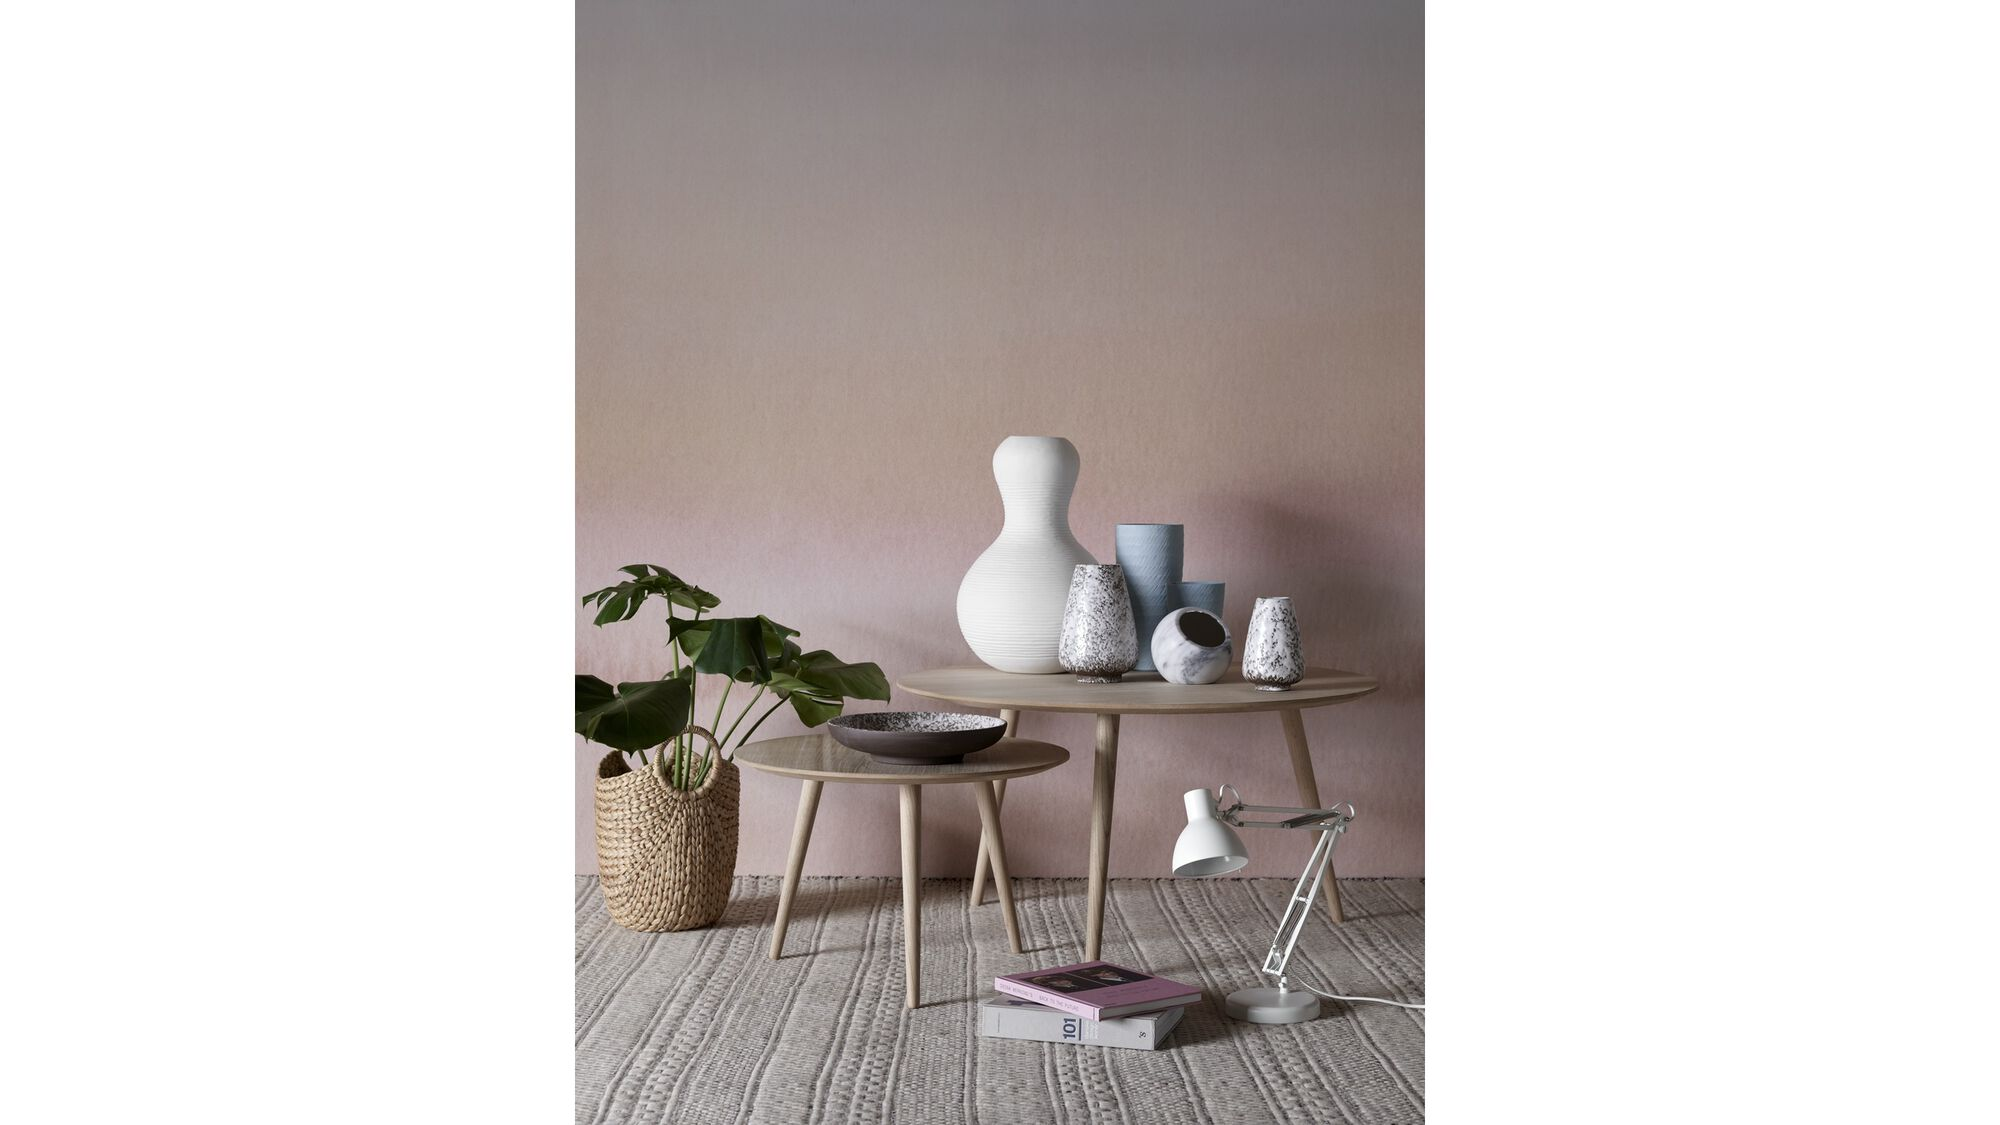 Small furniture - Hey basket